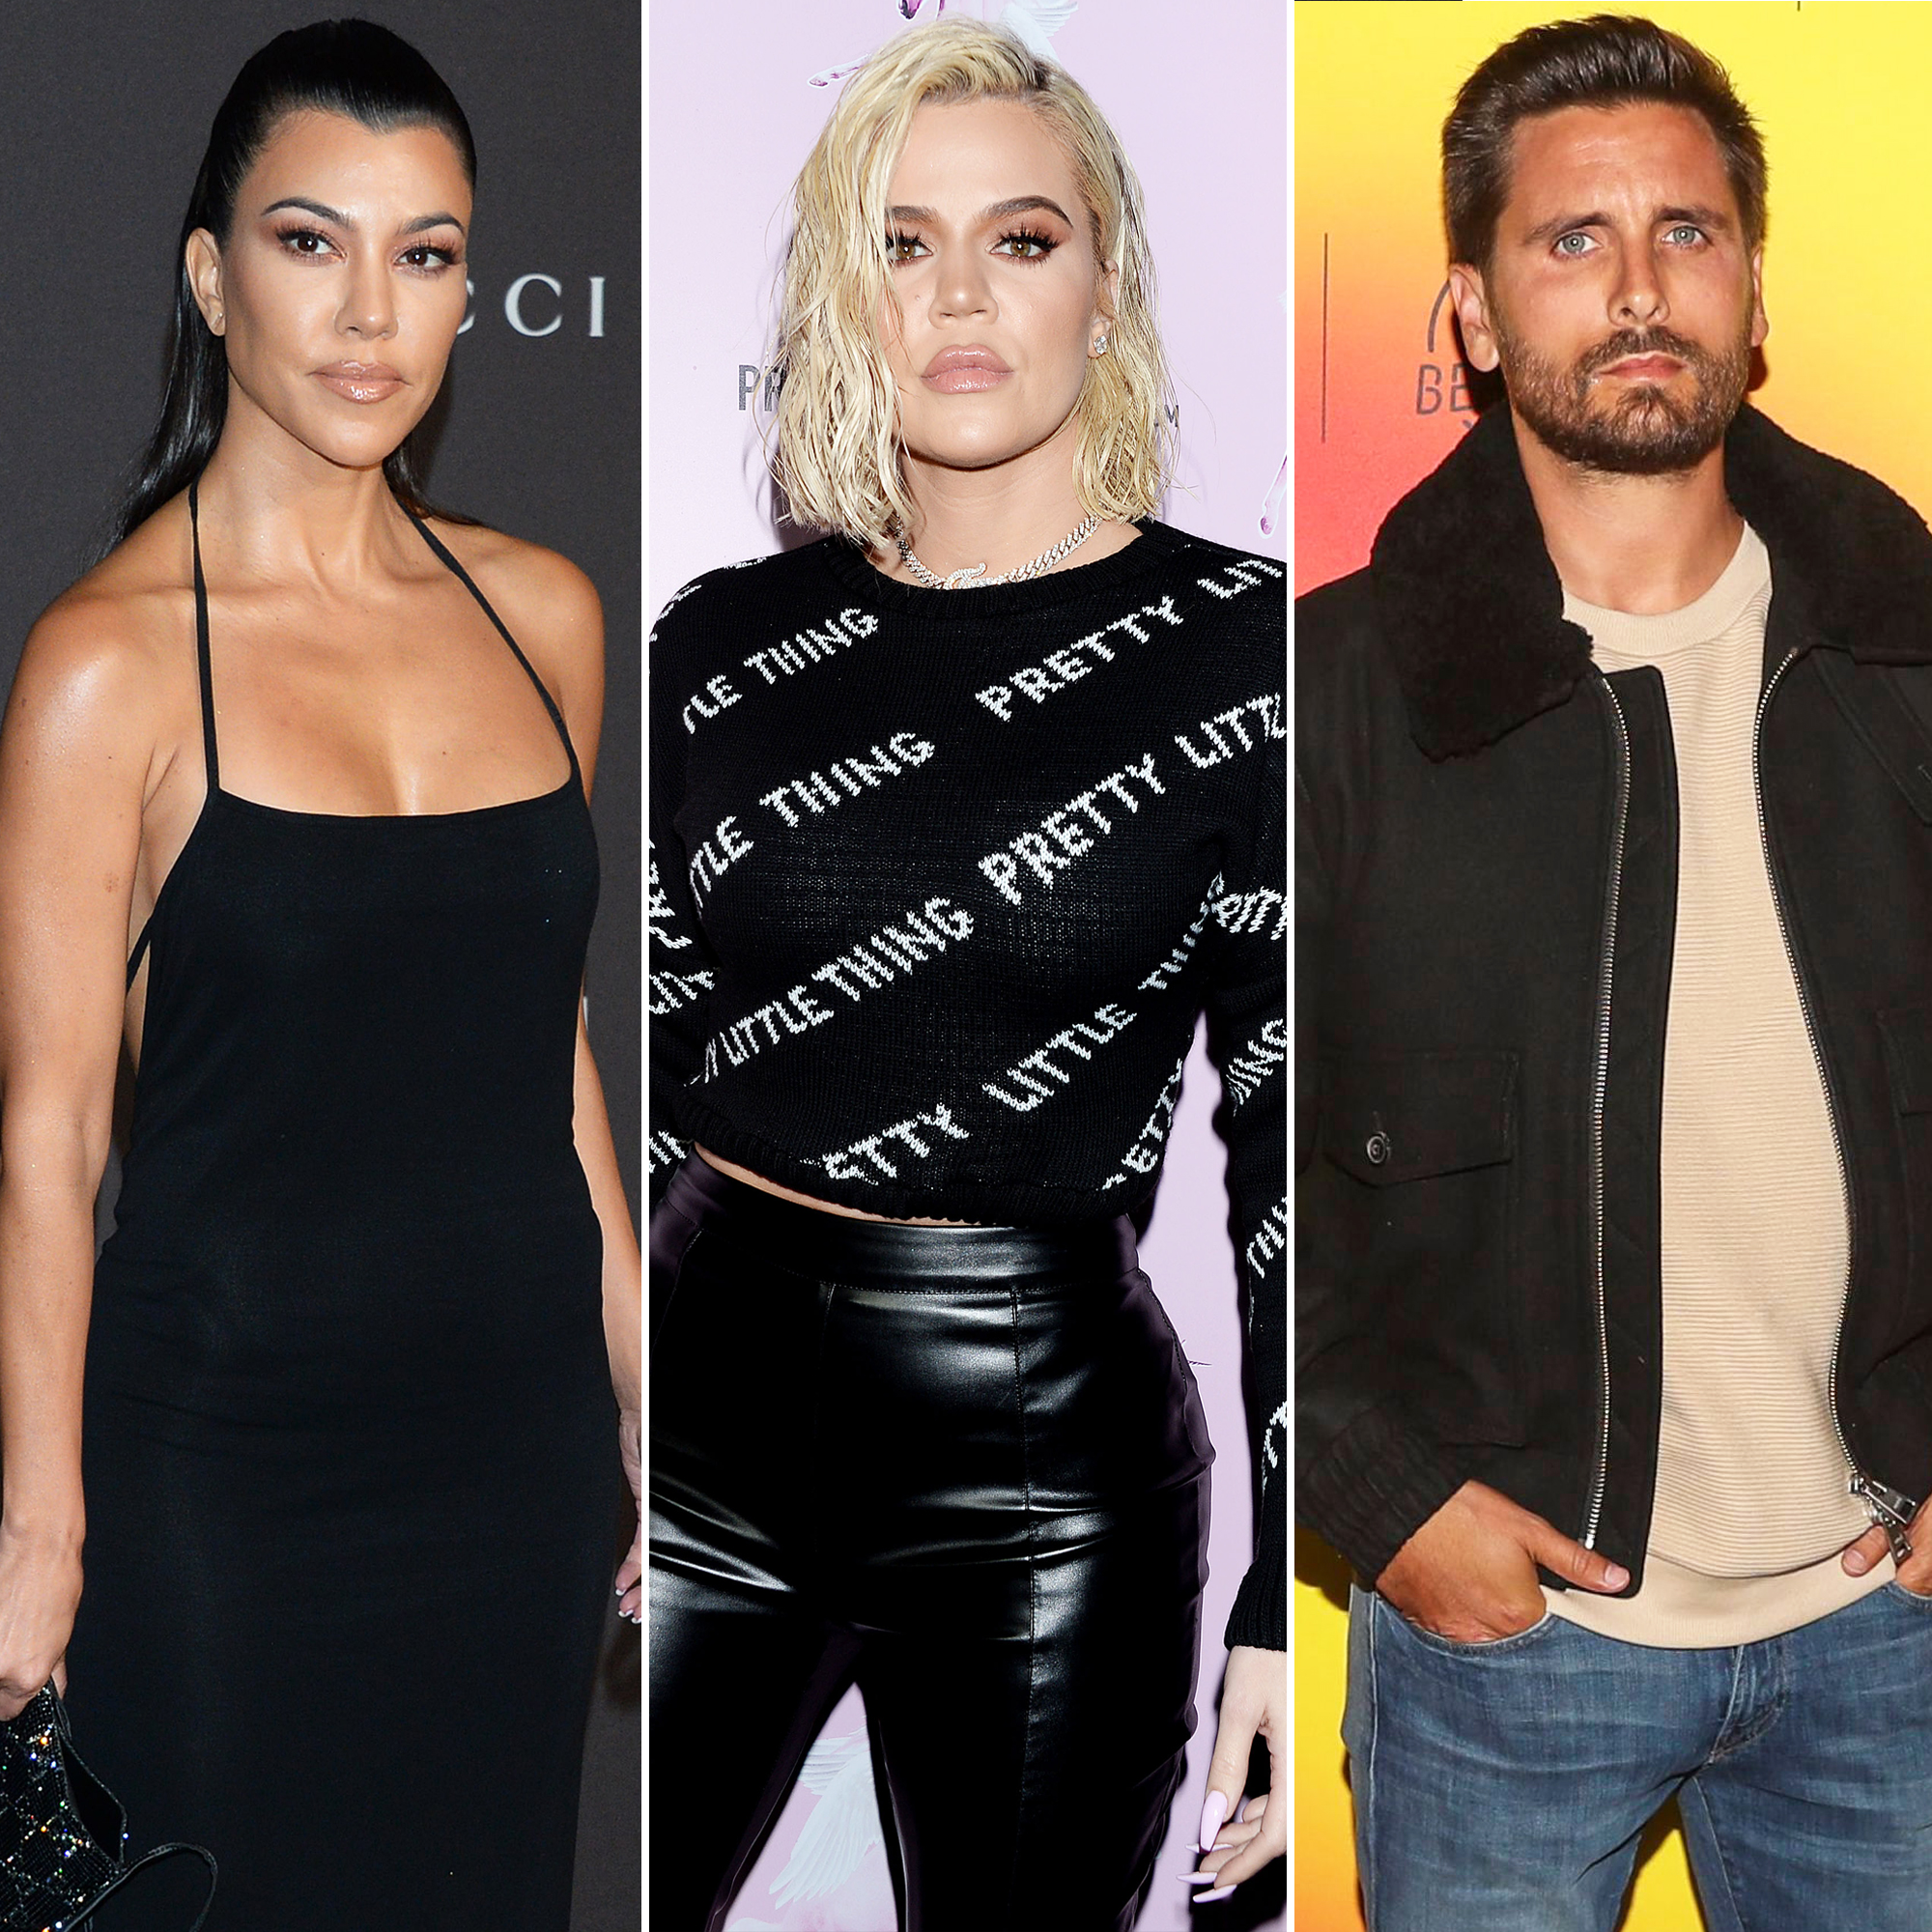 Kourtney Kardashian 'Feels Excluded' When Khloé and Scott Hang Out But Is 'Happy They're So Close'